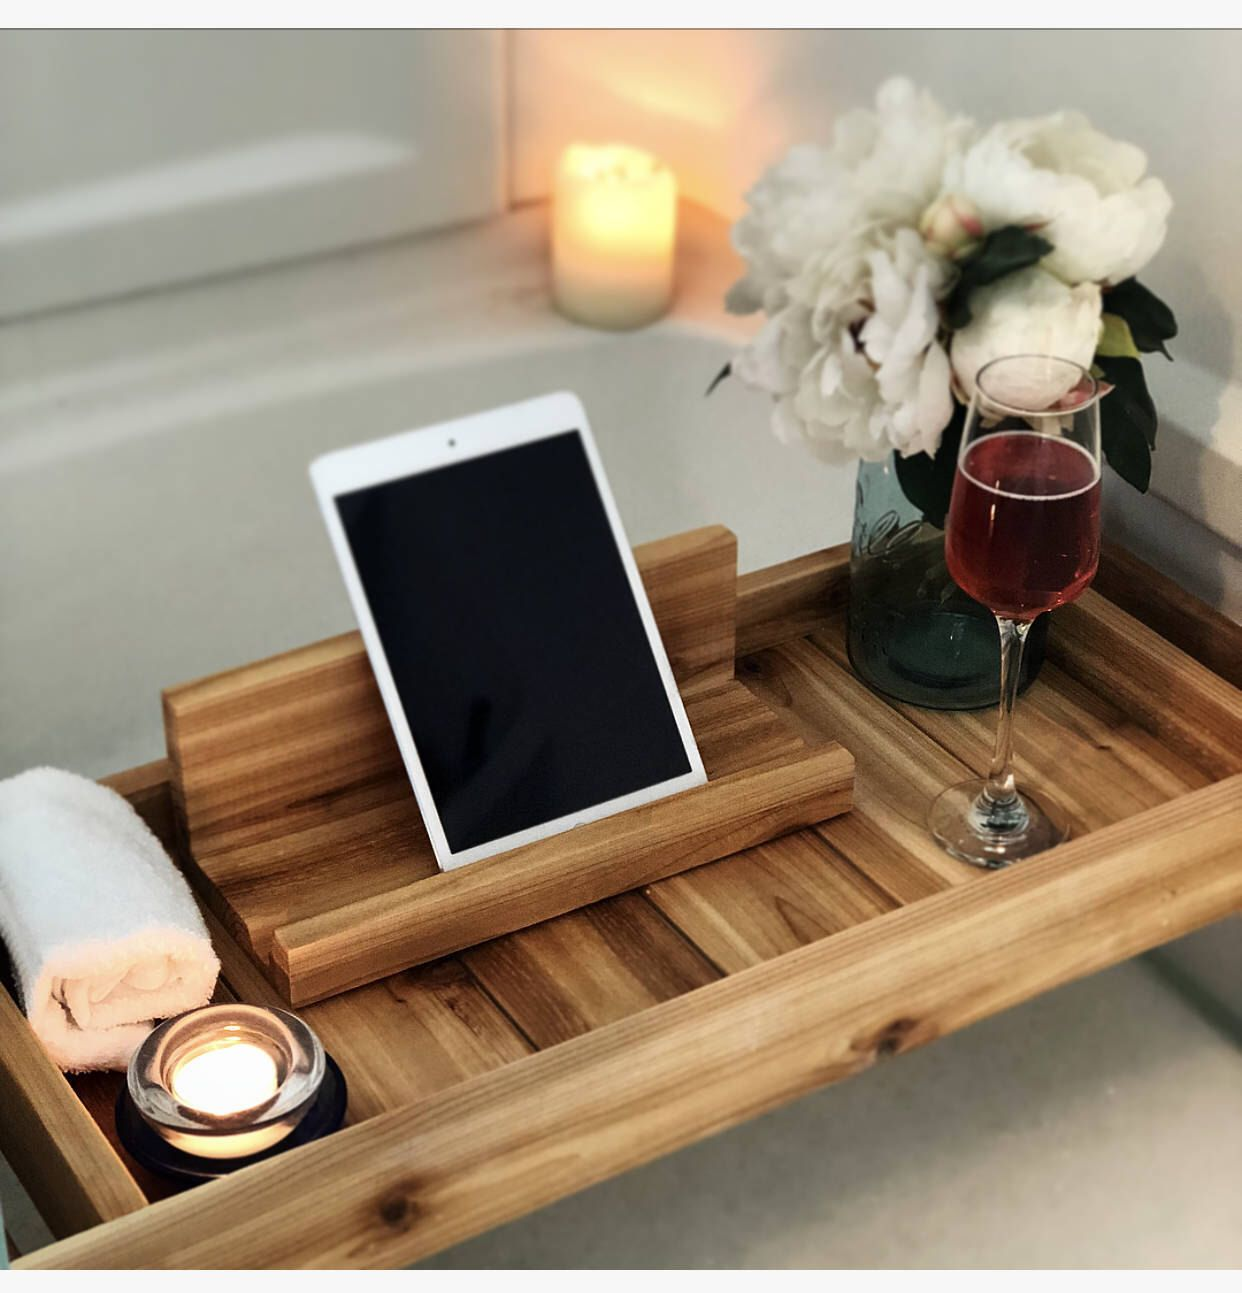 Cedar Bath Tray Bath Caddy Bath Tray With Ipad Holder